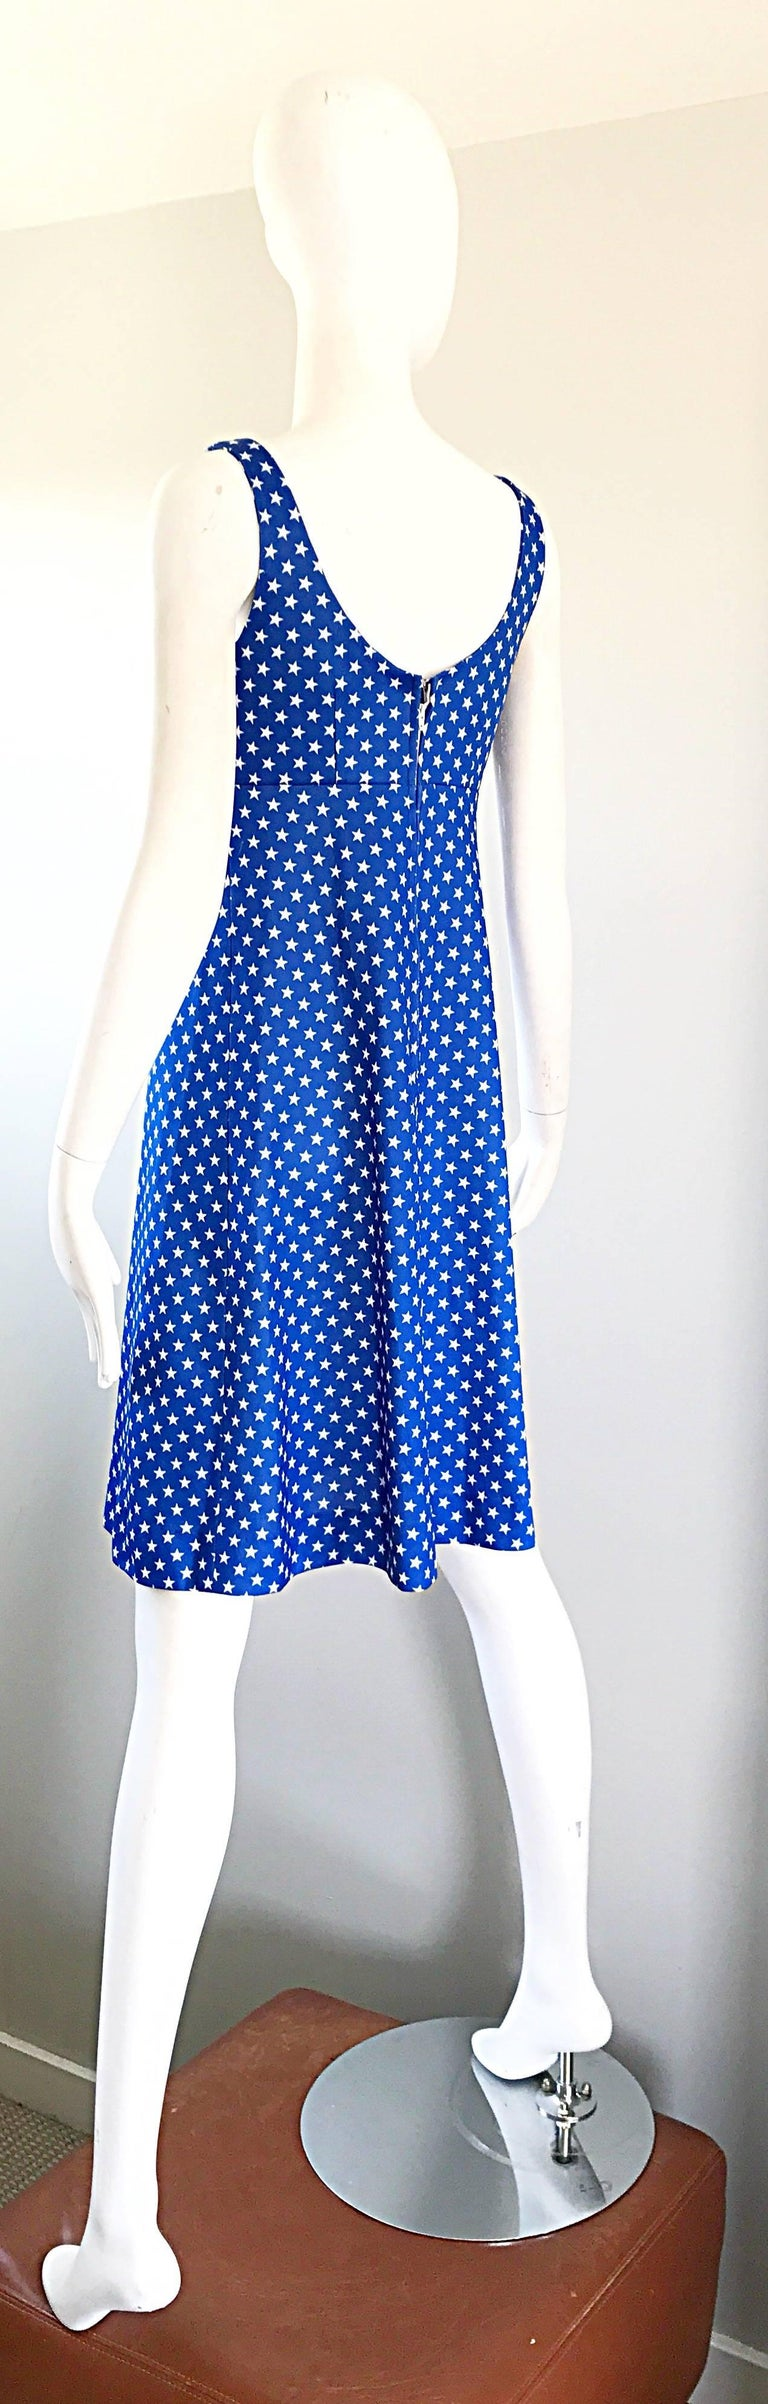 1960s Royal Blue and White Star Print A - Line Novelty Vintage 60s Dress For Sale 3